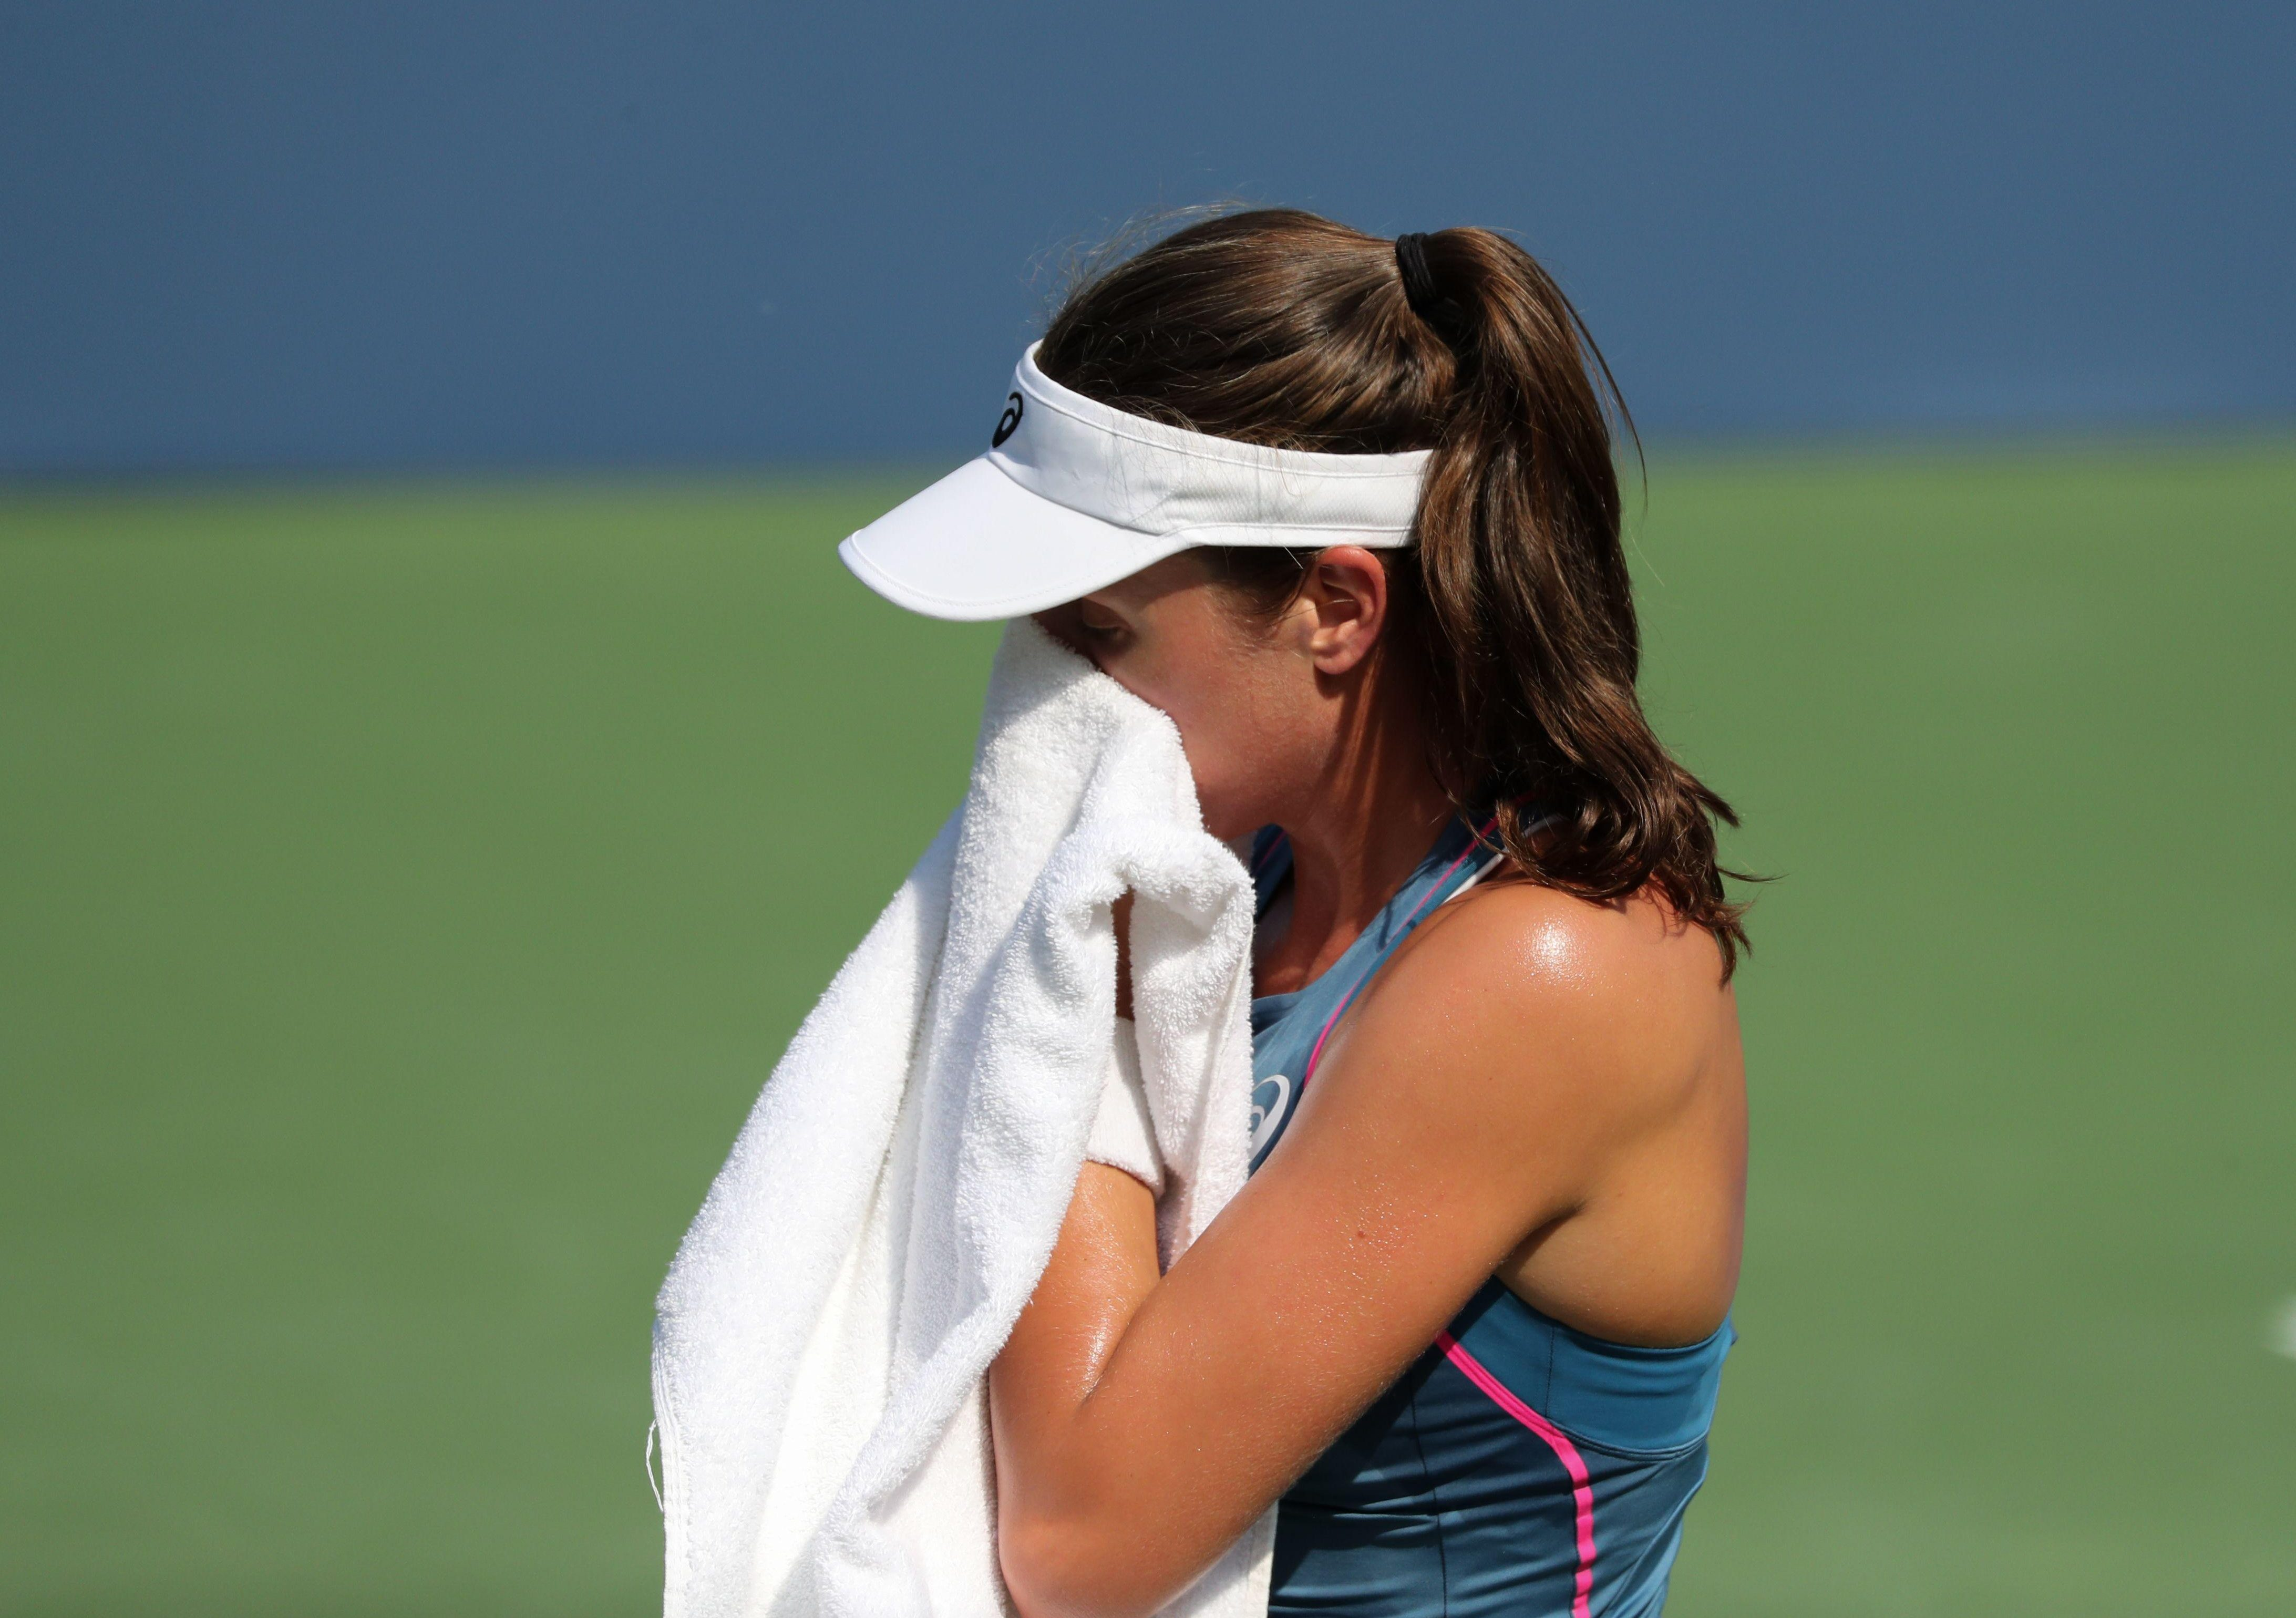 Johanna Konta suffered a heavy defeat in her first-round match at the US Open